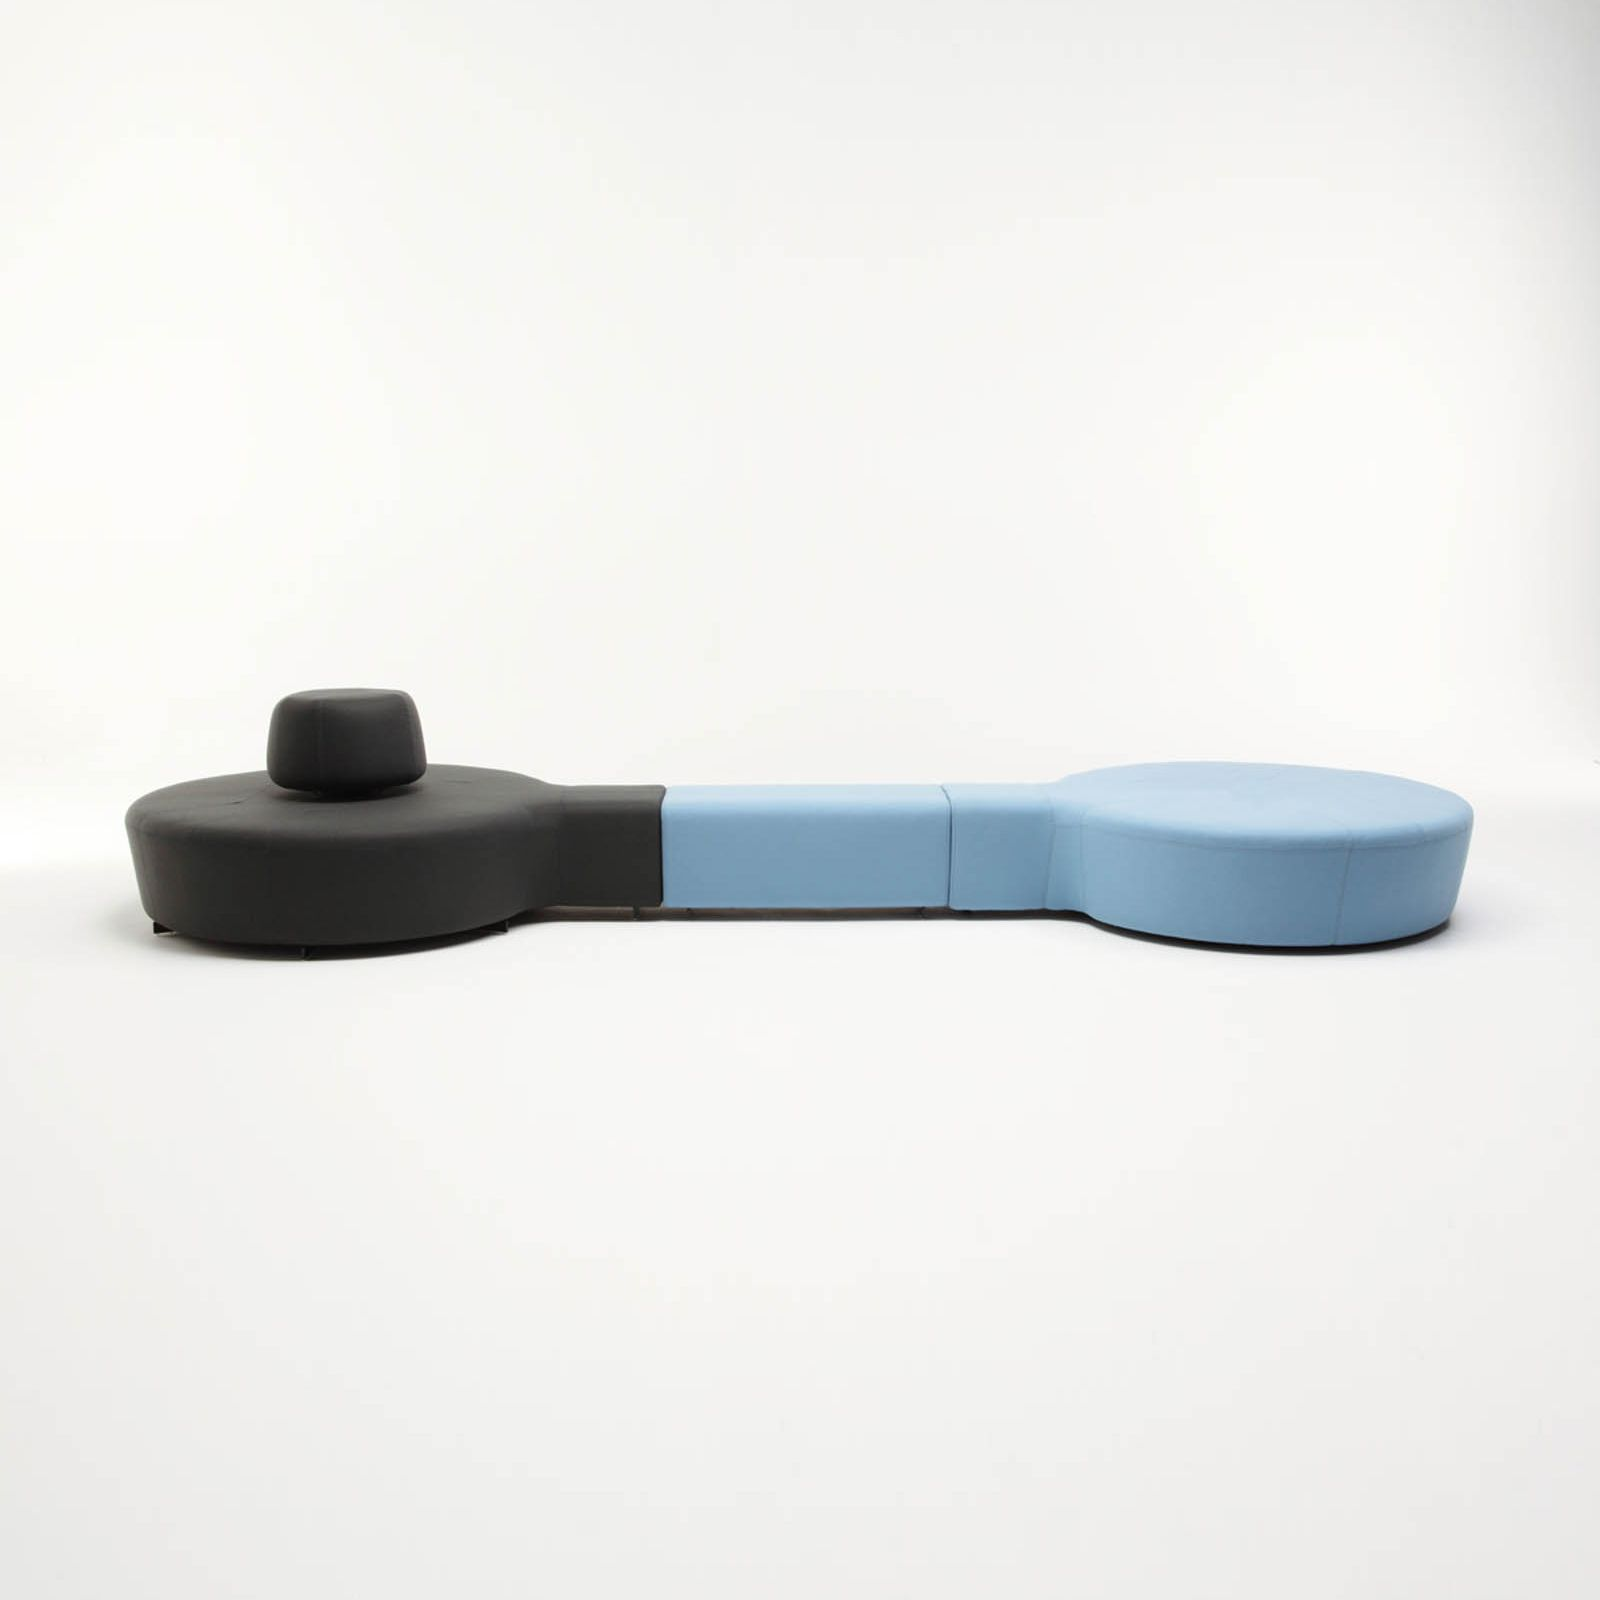 MIR MODULAR SEATING